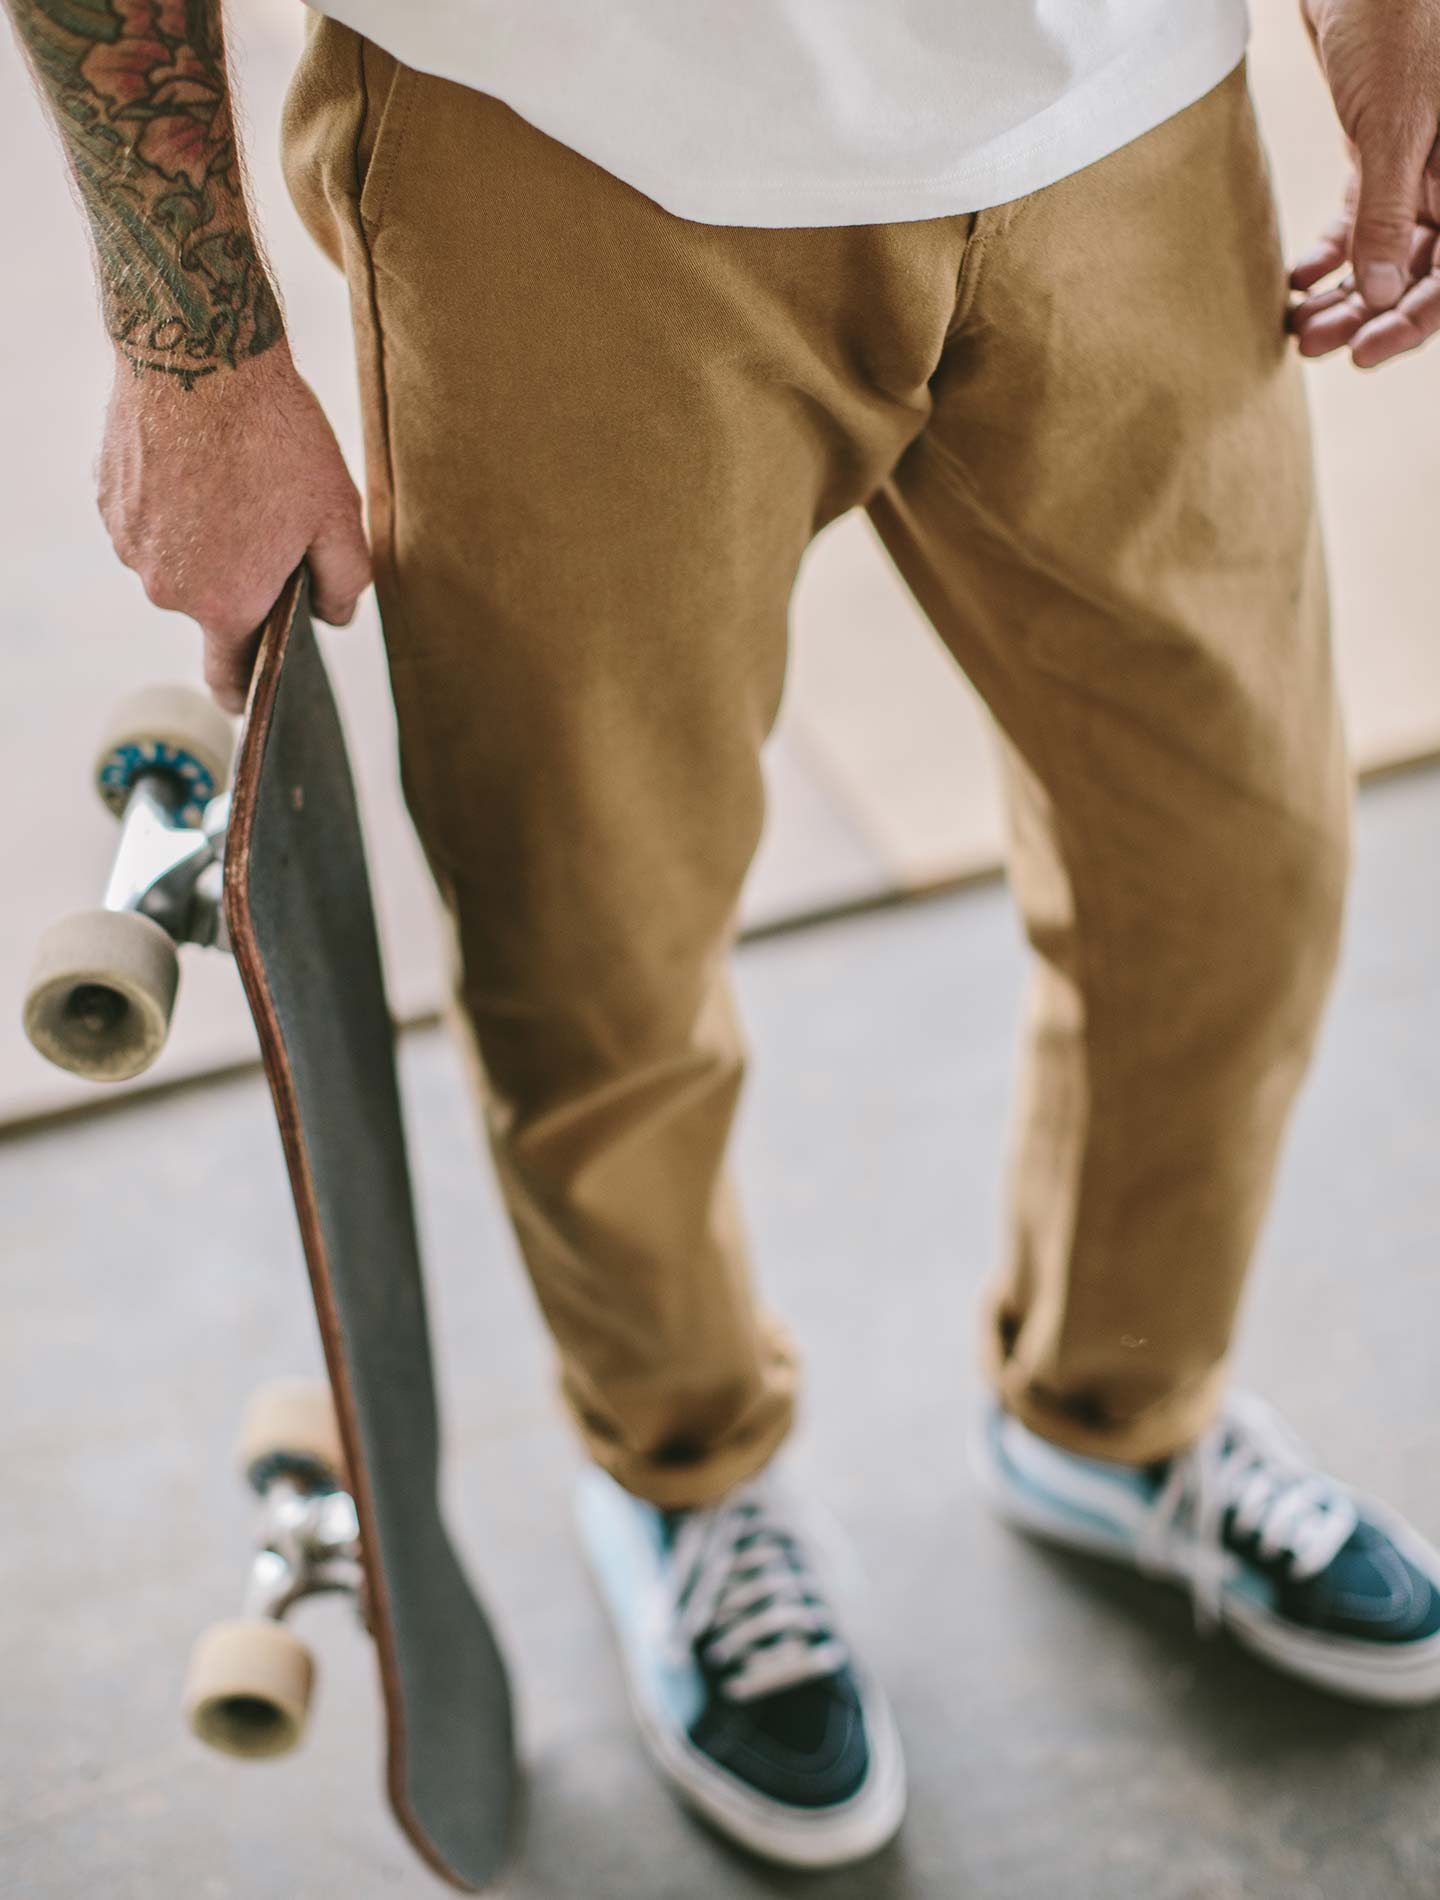 A dude with a skateboard, wearing chinos.